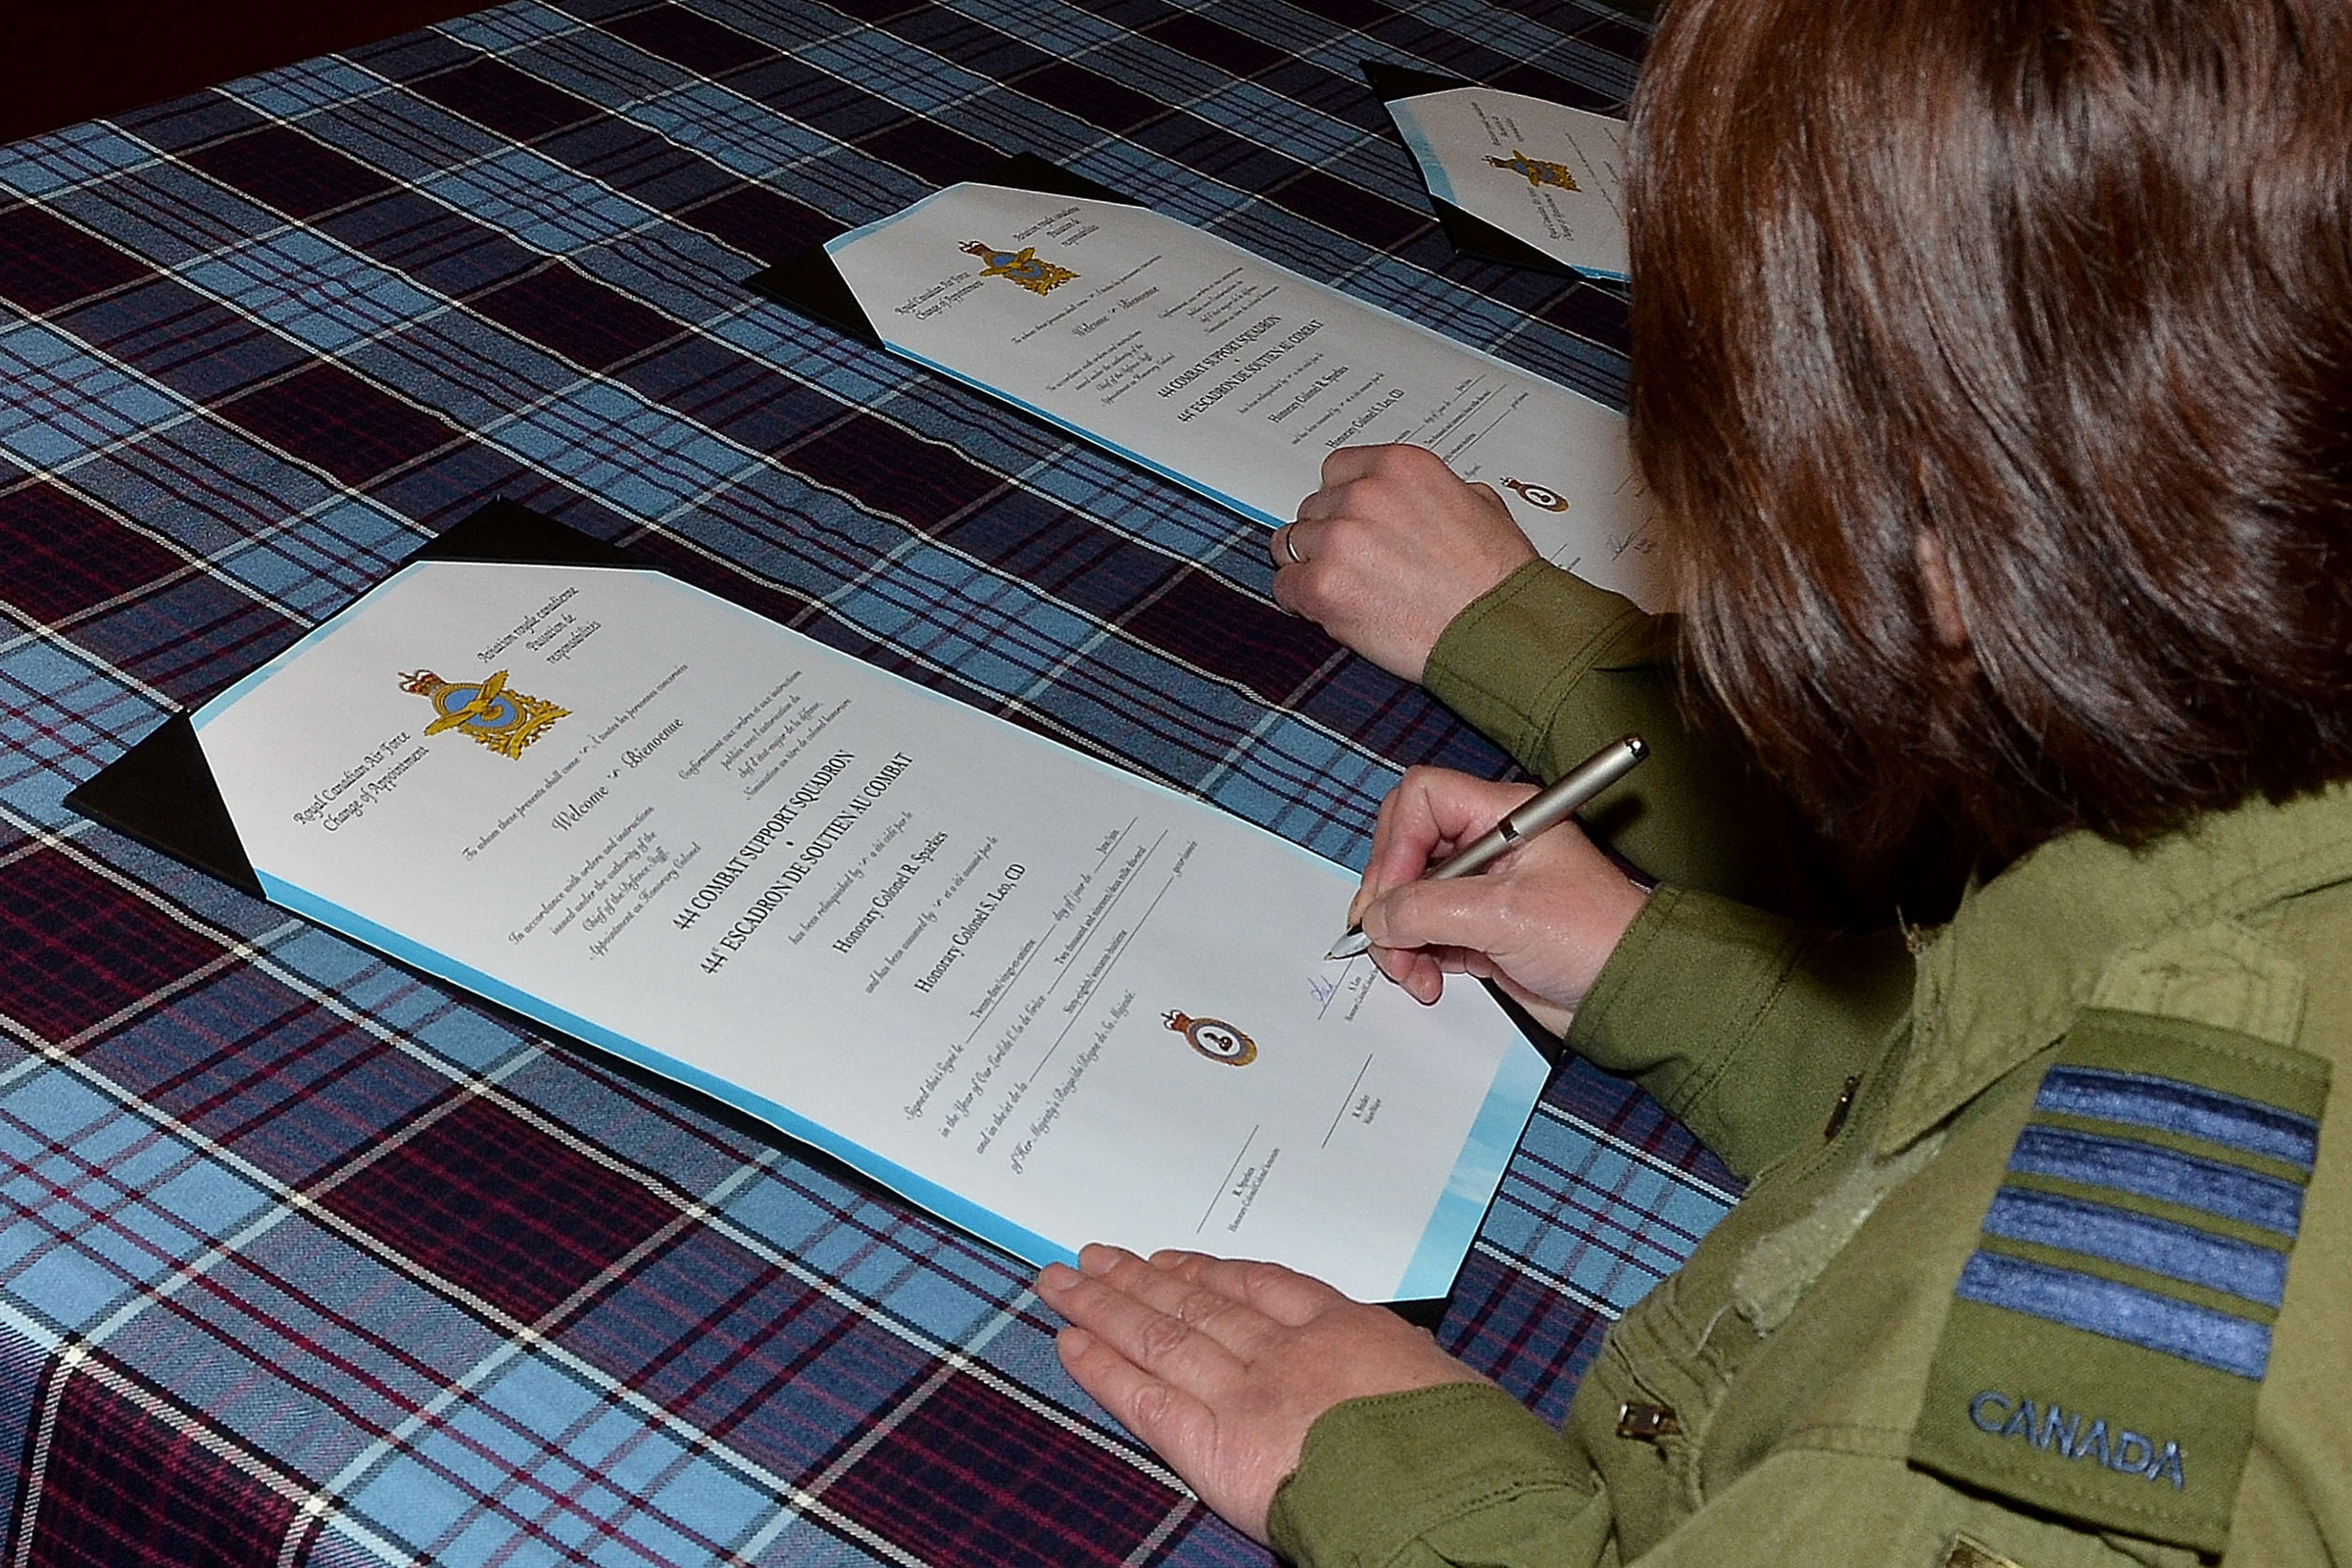 On June 21, 2109, Honorary Colonel Sarah Leo signs the document appointing her as honorary colonel of 444 Combat Support Squadron, located at 5 Wing Goose Bay, Newfoundland and Labrador. She is the first indigenous woman to be appointed to the post at the squadron. PHOTO: Master Corporal Krista Blizzard, GB2019-06-172